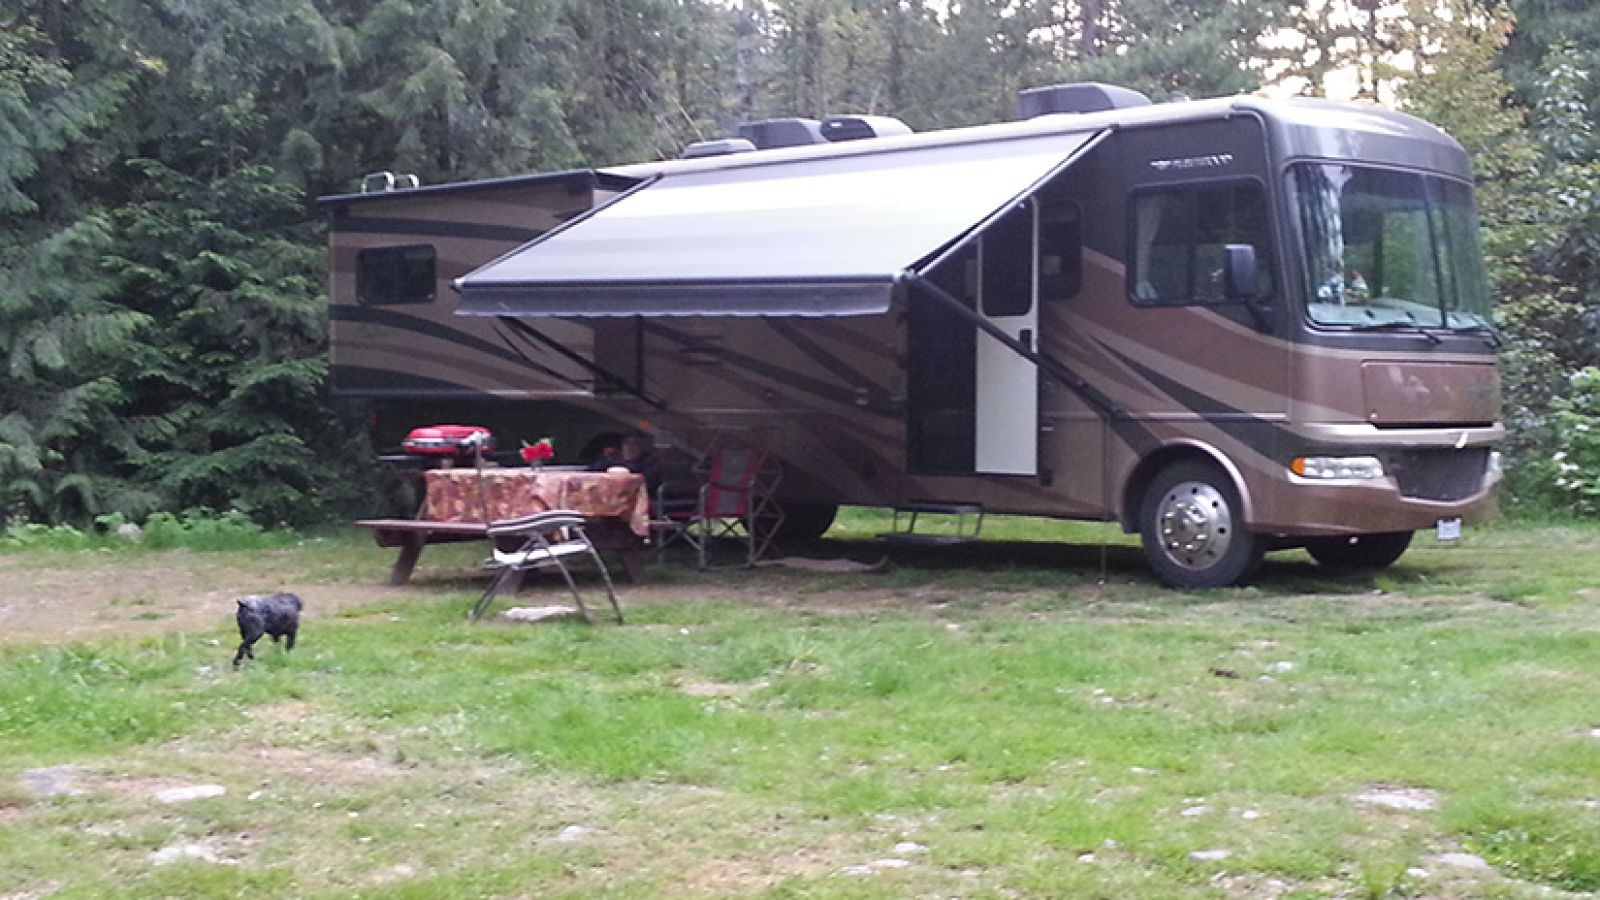 Serviced and treed campsites.